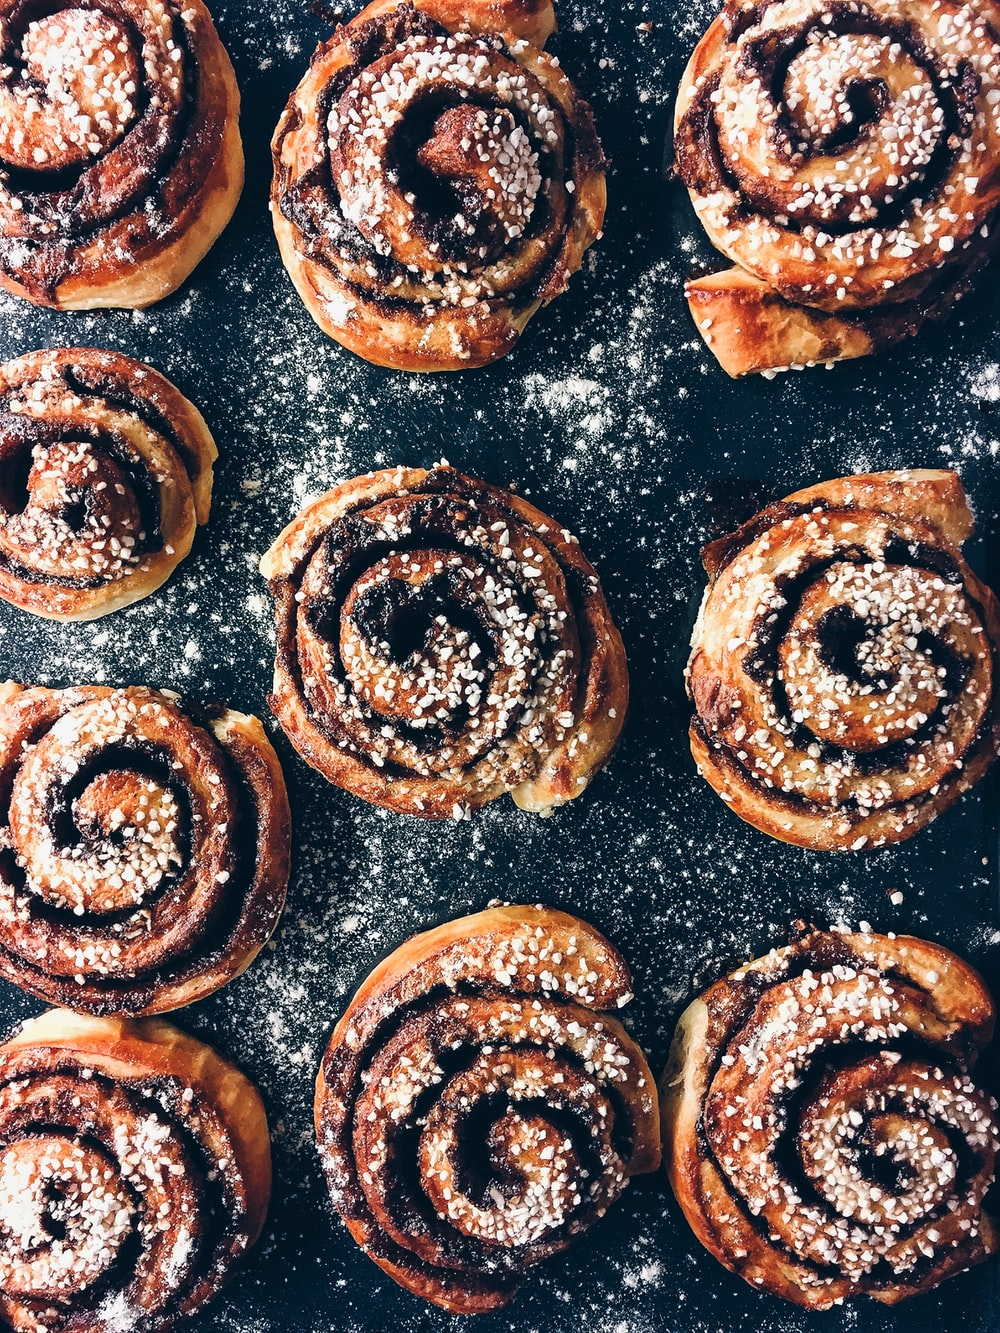 black and brown pastries